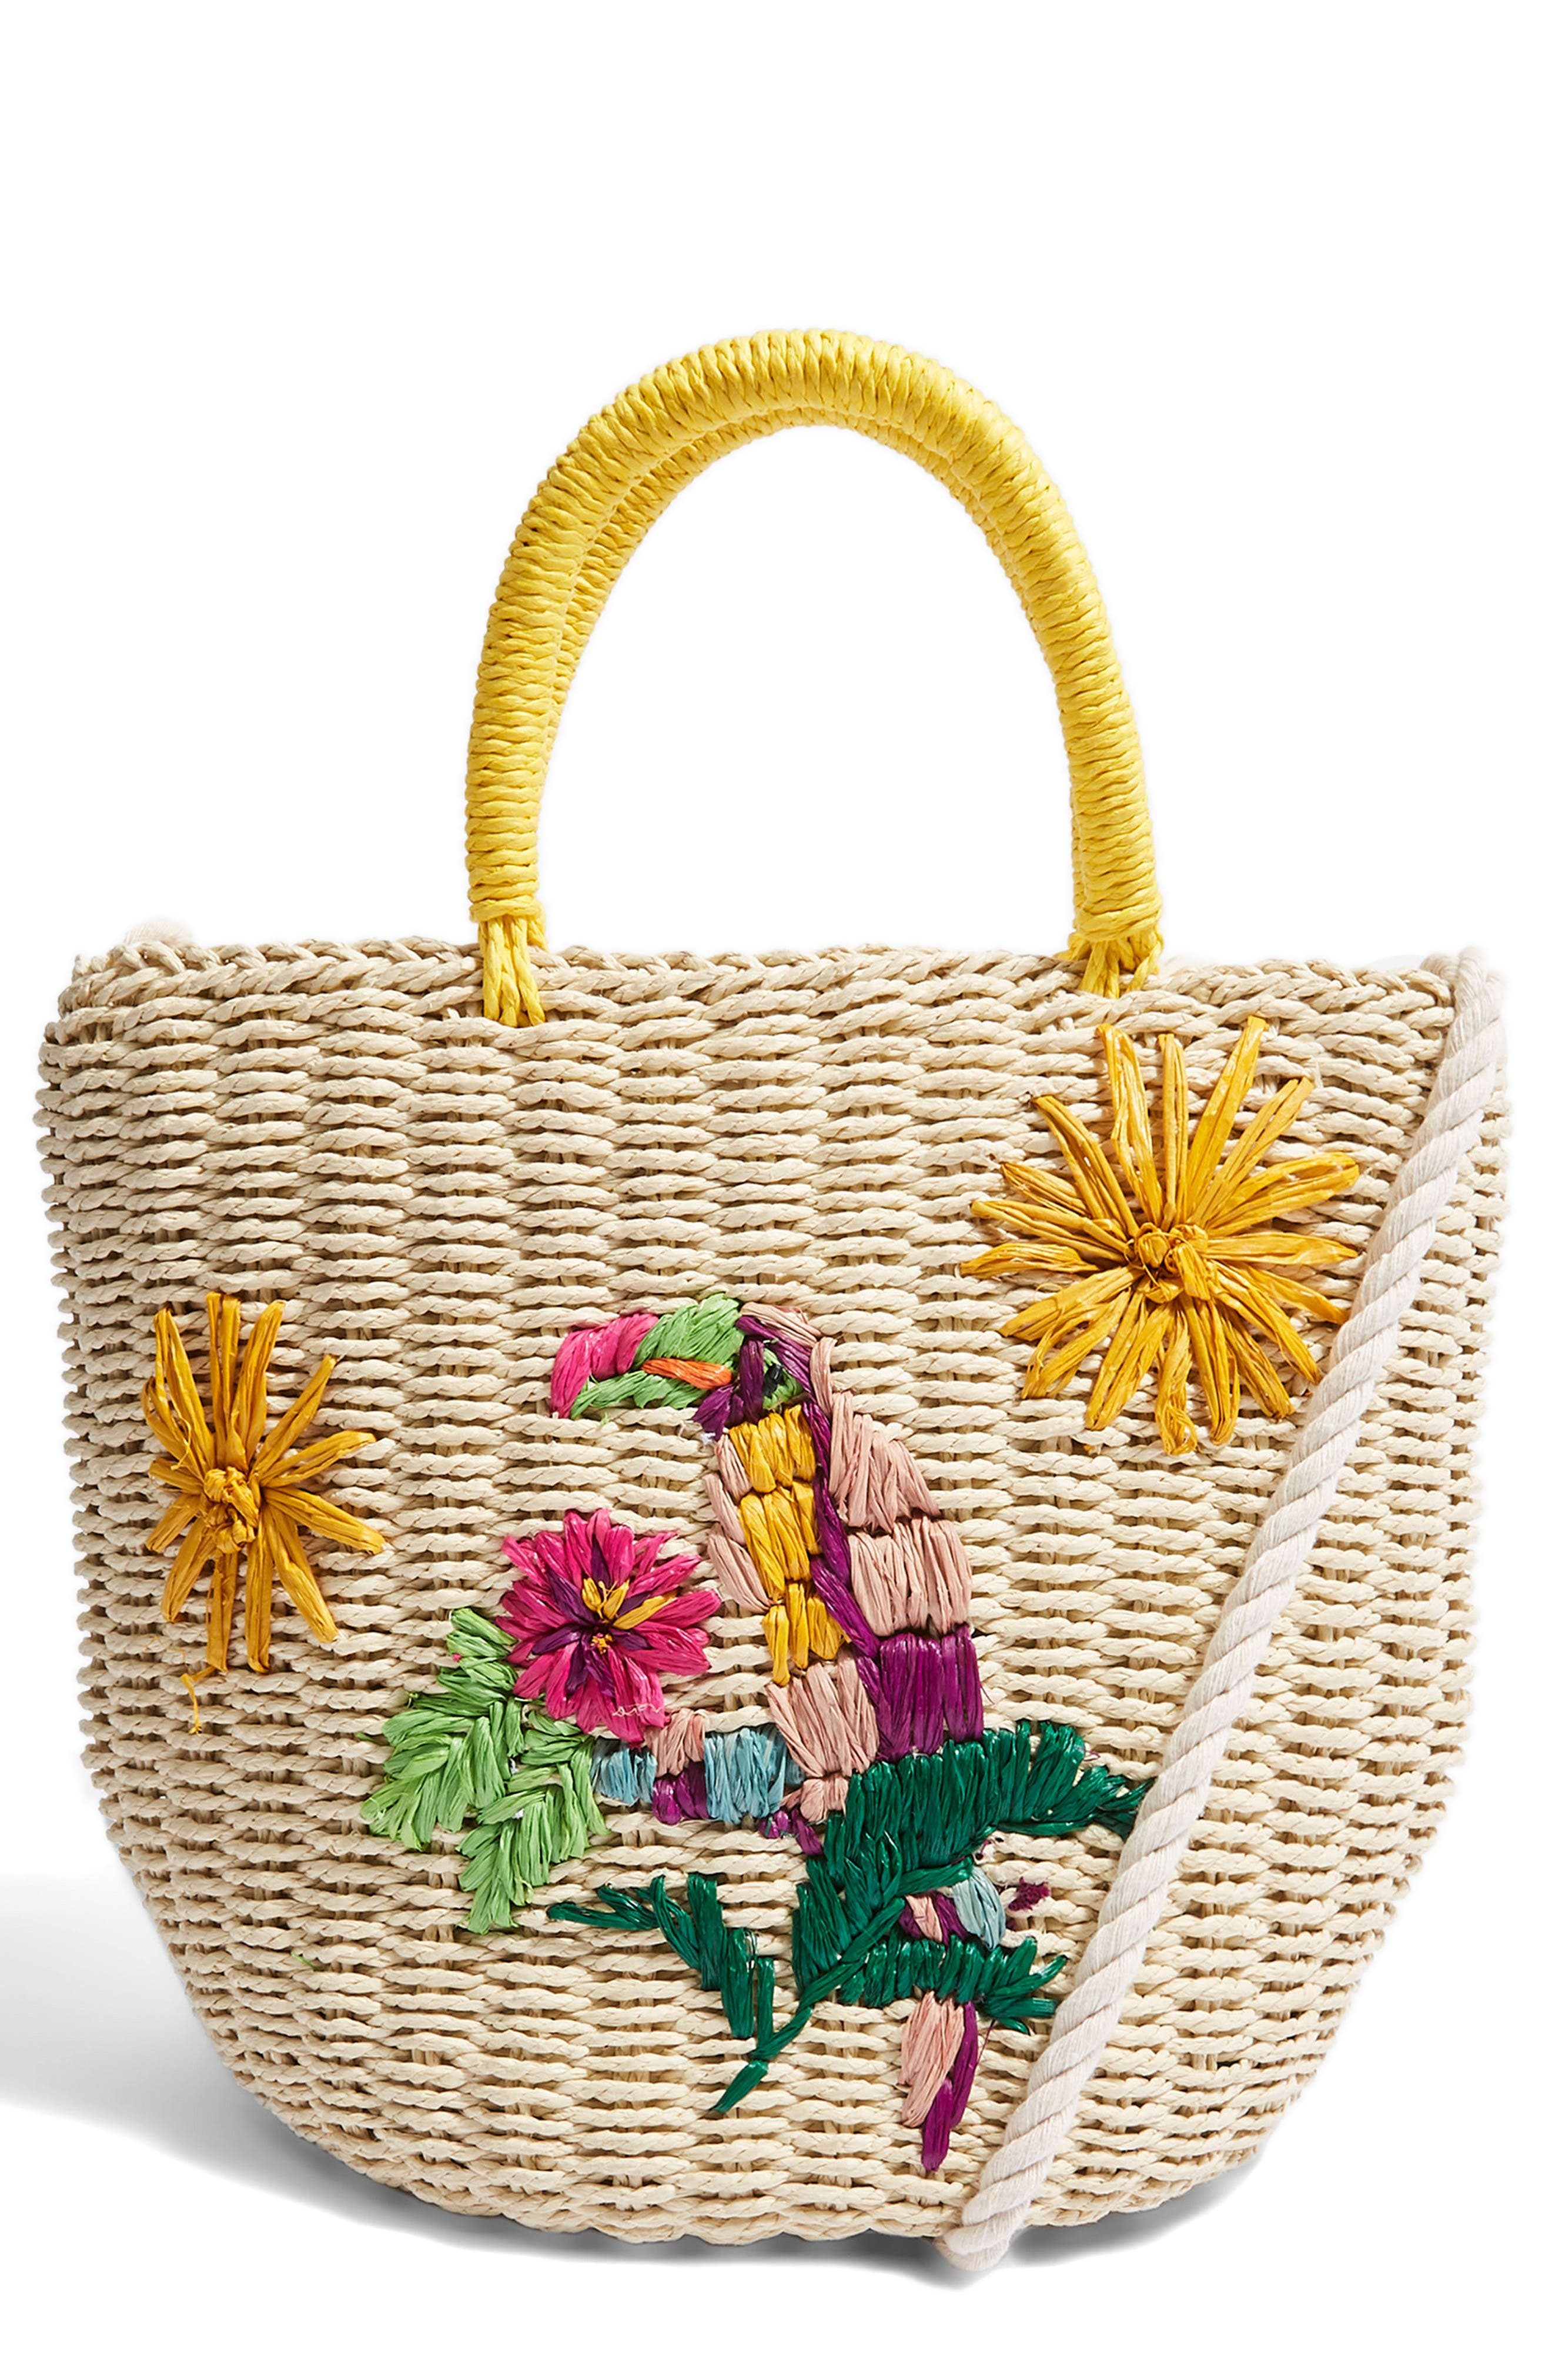 Betsy Toucan Straw Bag,                         Main,                         color, 250